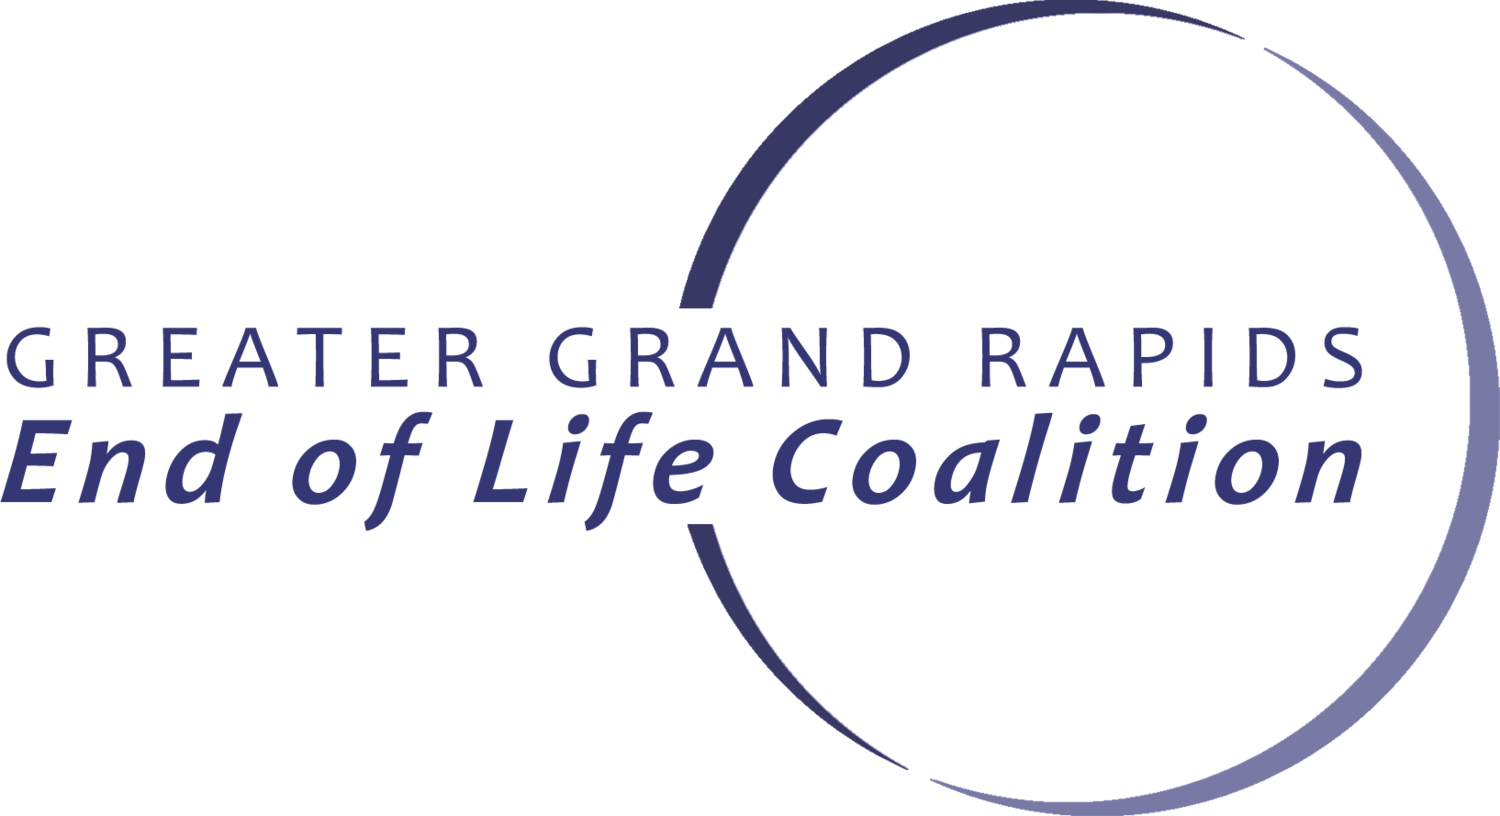 Greater Grand Rapids End of Life Coalition